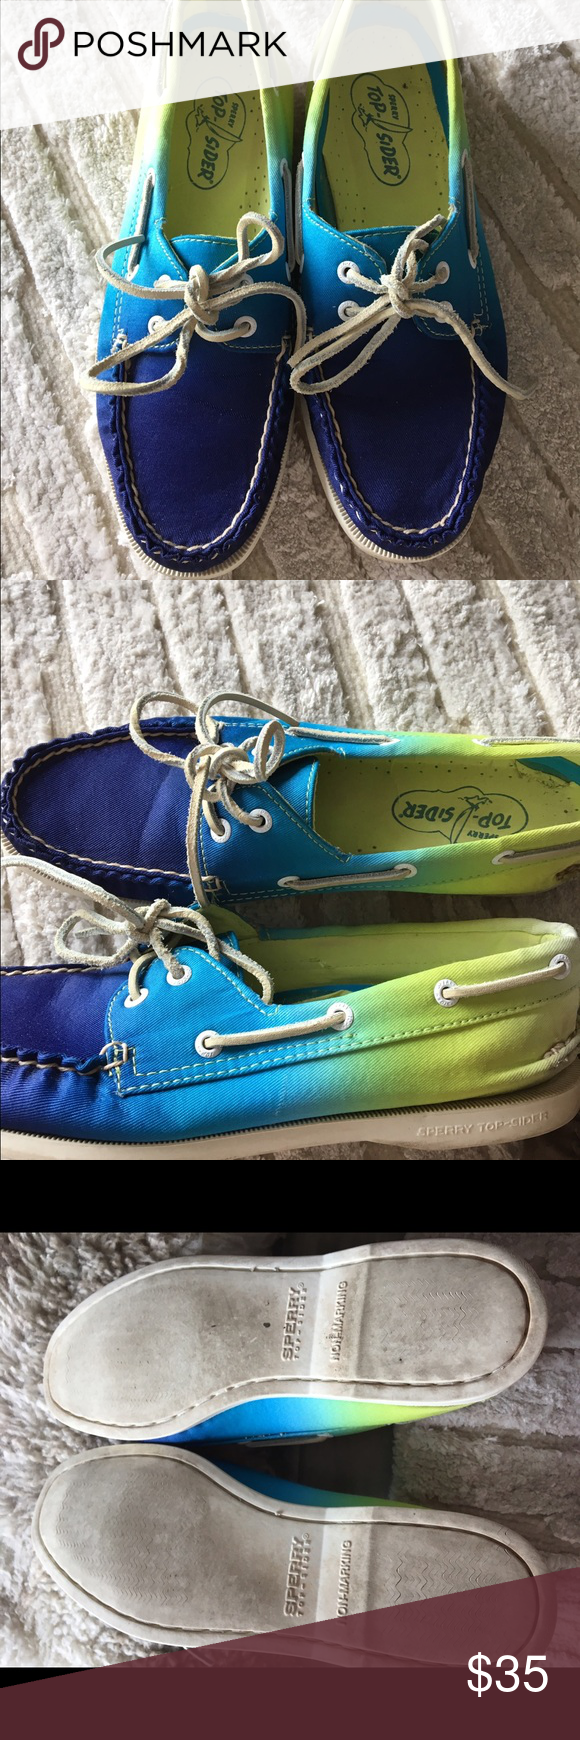 Speedy Topsiders - size 8 Ombré Sperry Topsider boat shoes casual loafers. Excellent used condition. Worn only a few times. Size 8 Sperry Top-Sider Shoes Moccasins